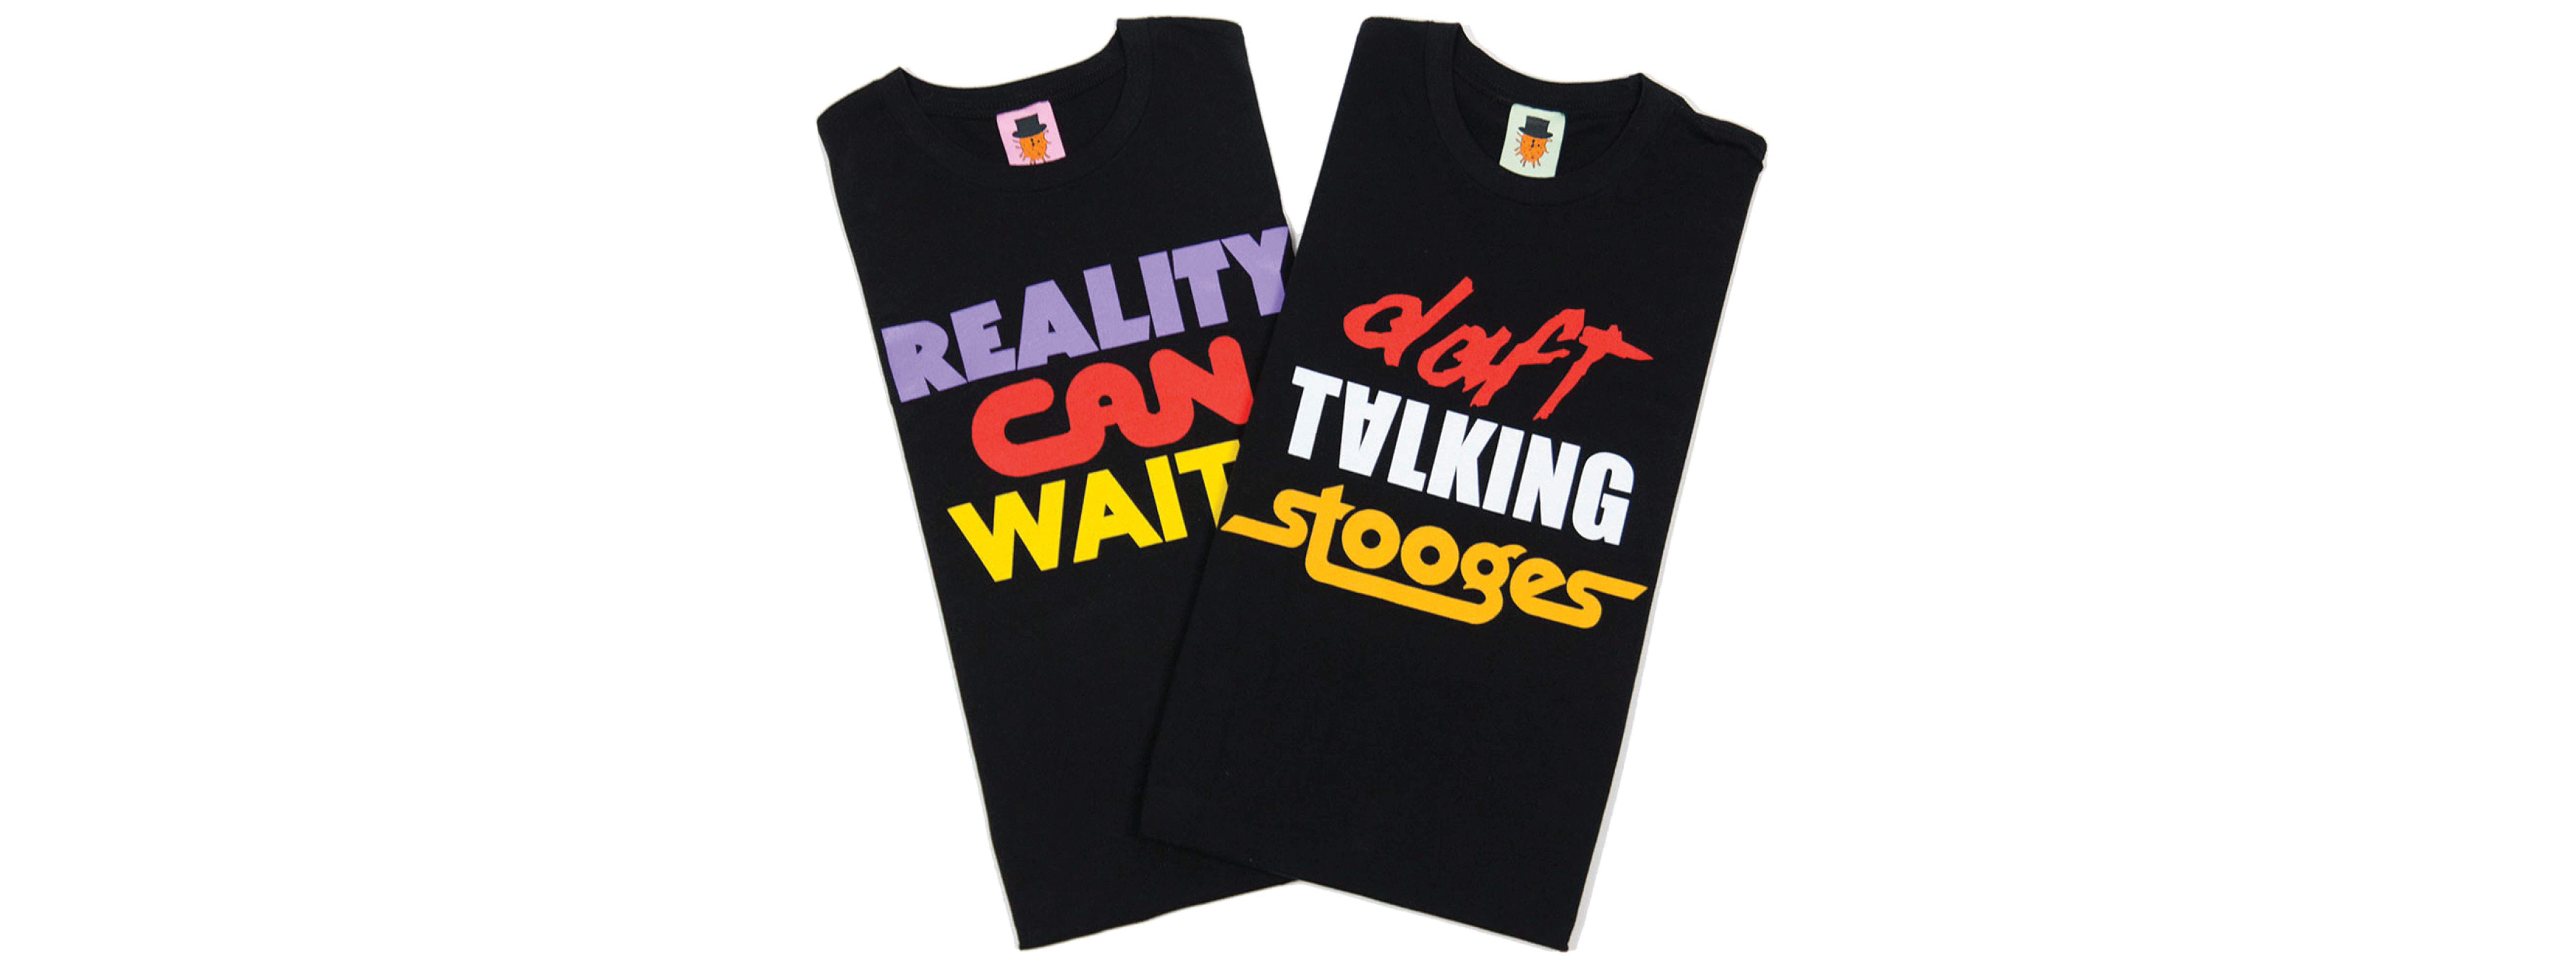 WORST MANNERS TEES